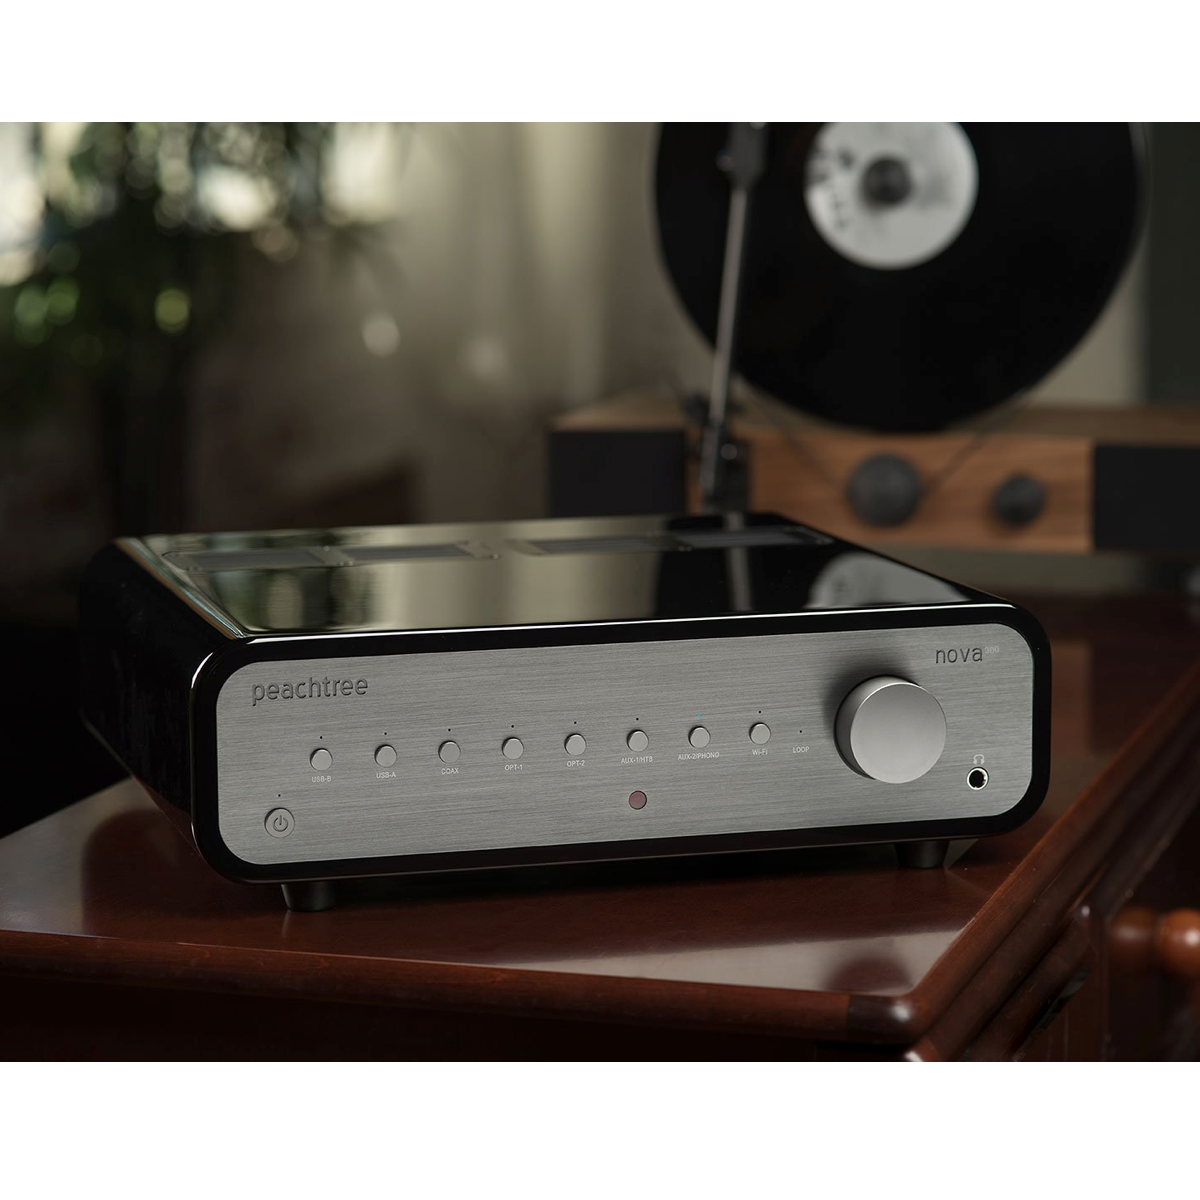 Peachtree Audio Nova 300 - Integrated Stereo Amplifier - AVStore